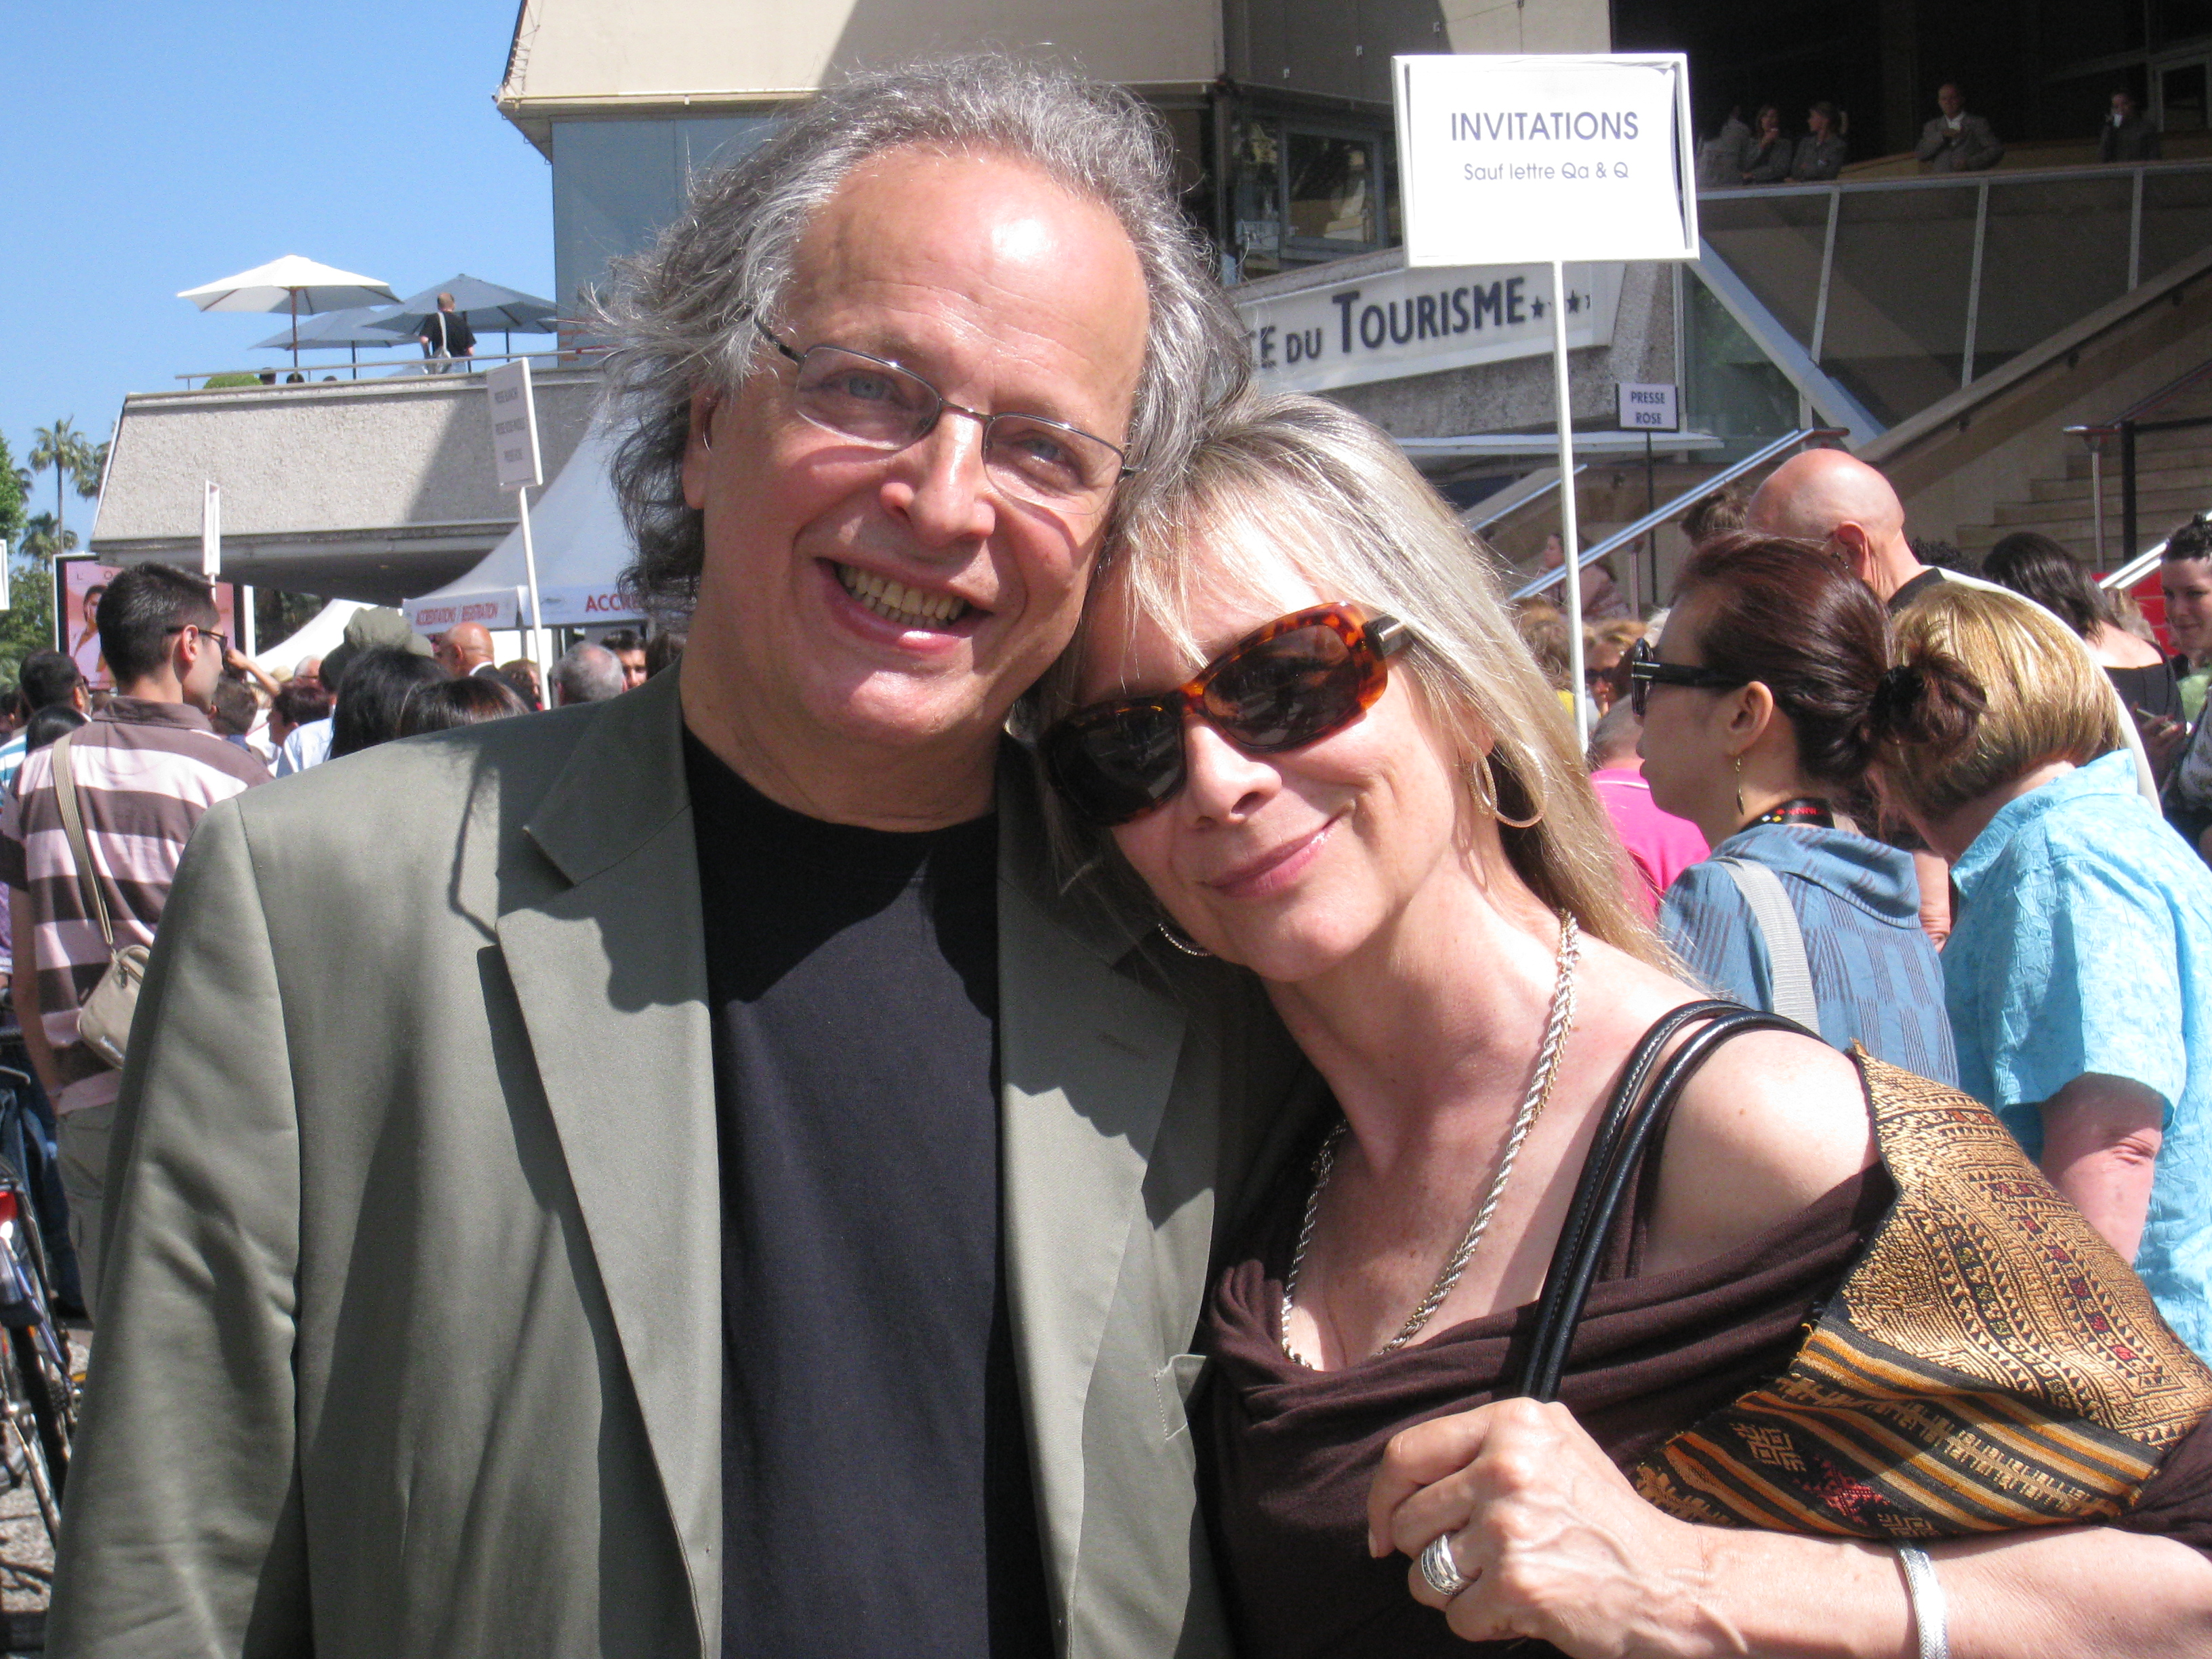 Miimi with Jimmy Shuman in Cannes